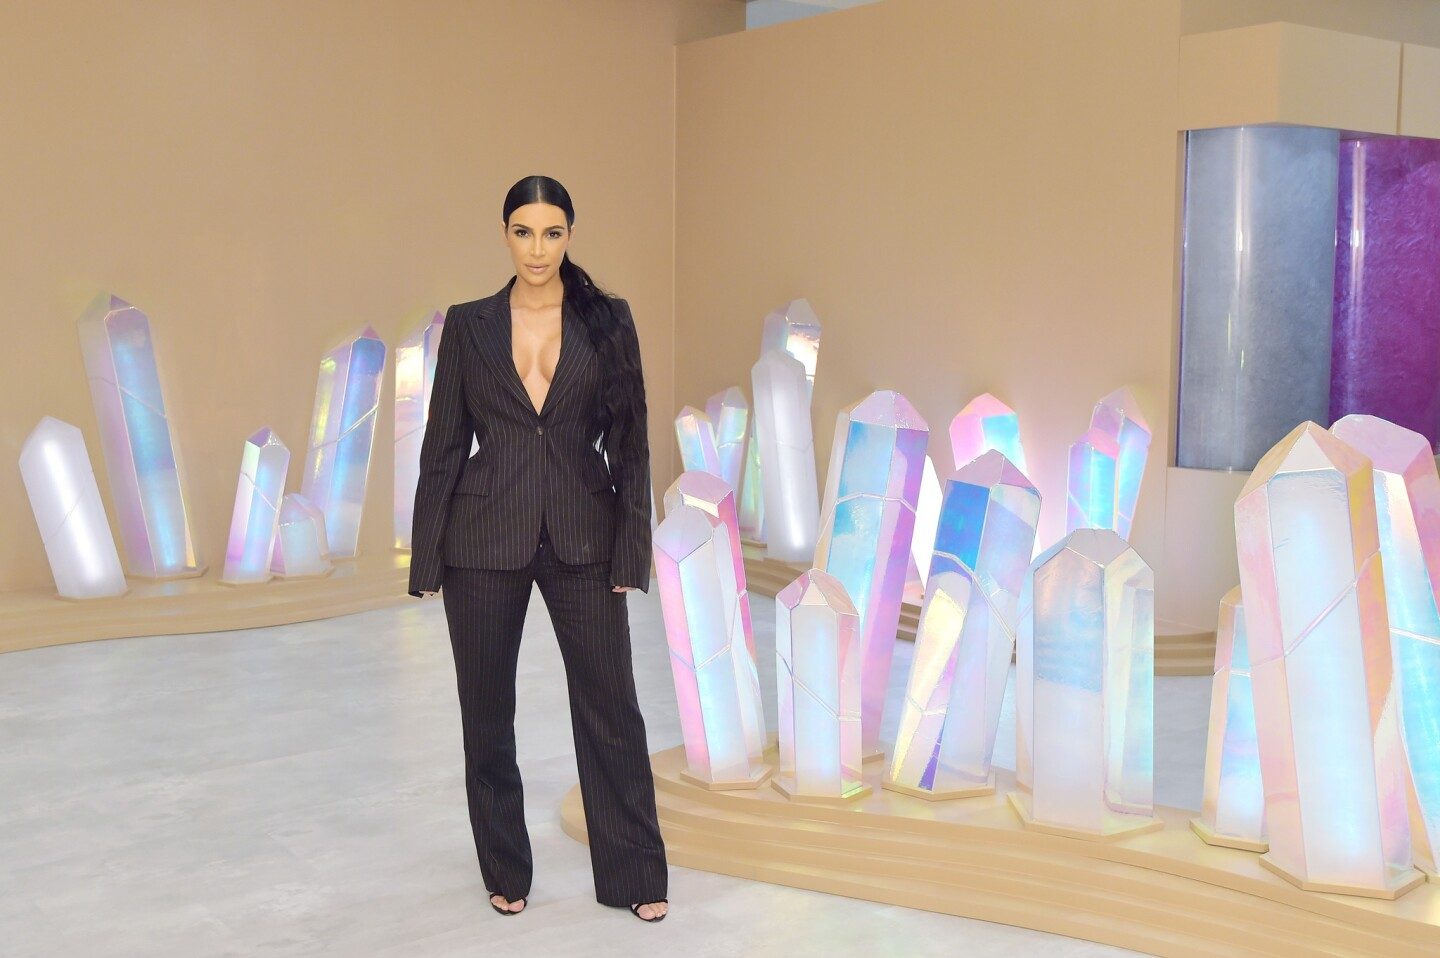 KKW Beauty and Fragrance pop-up at South Coast Plaza - Los Angeles Times